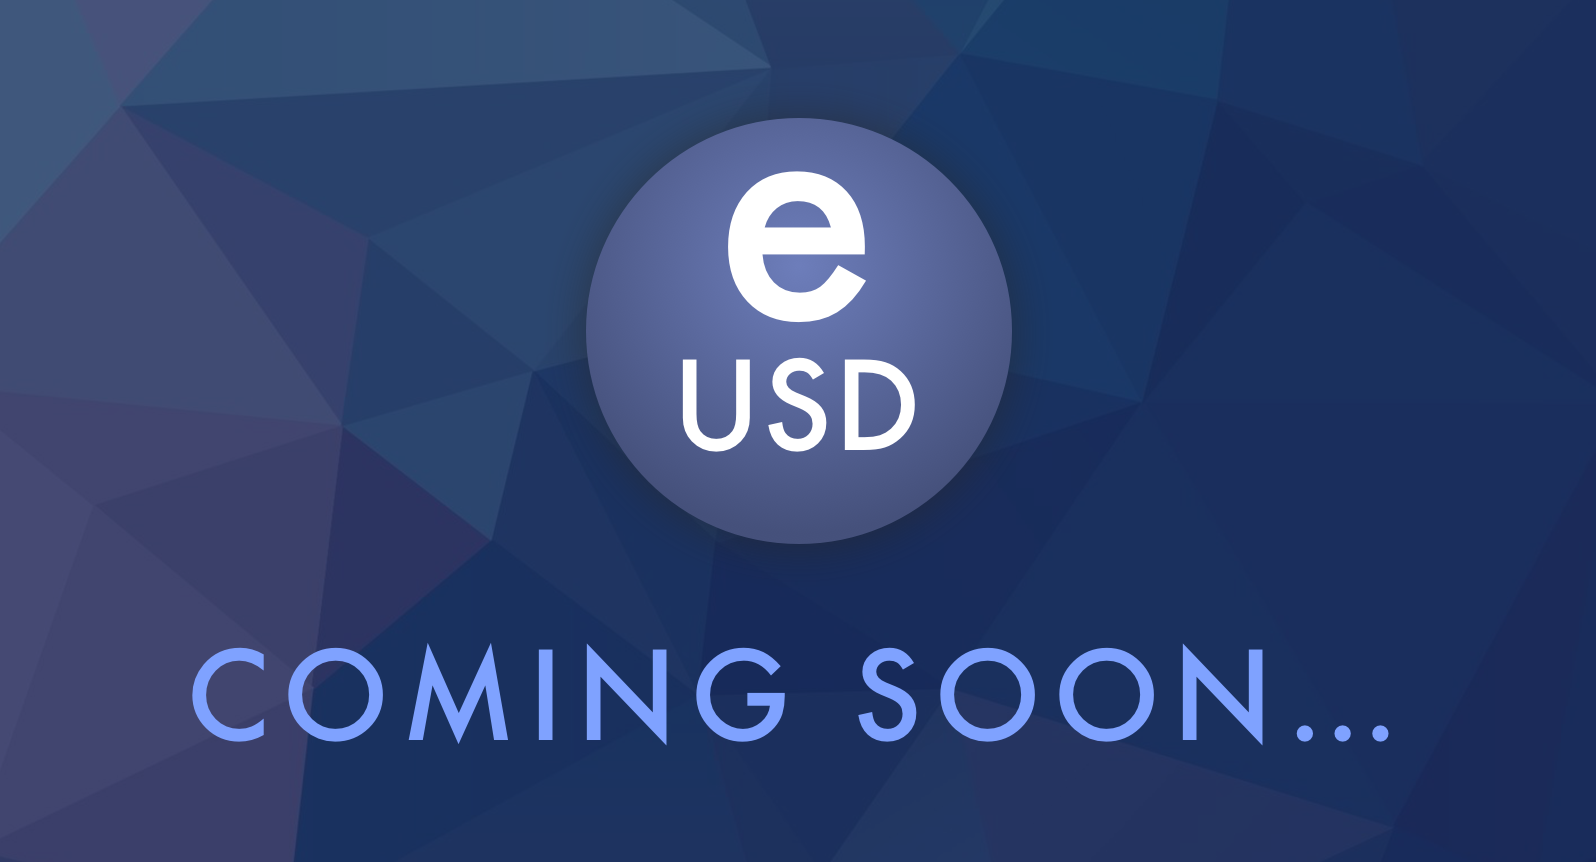 The full launch of eUSD is coming next week!